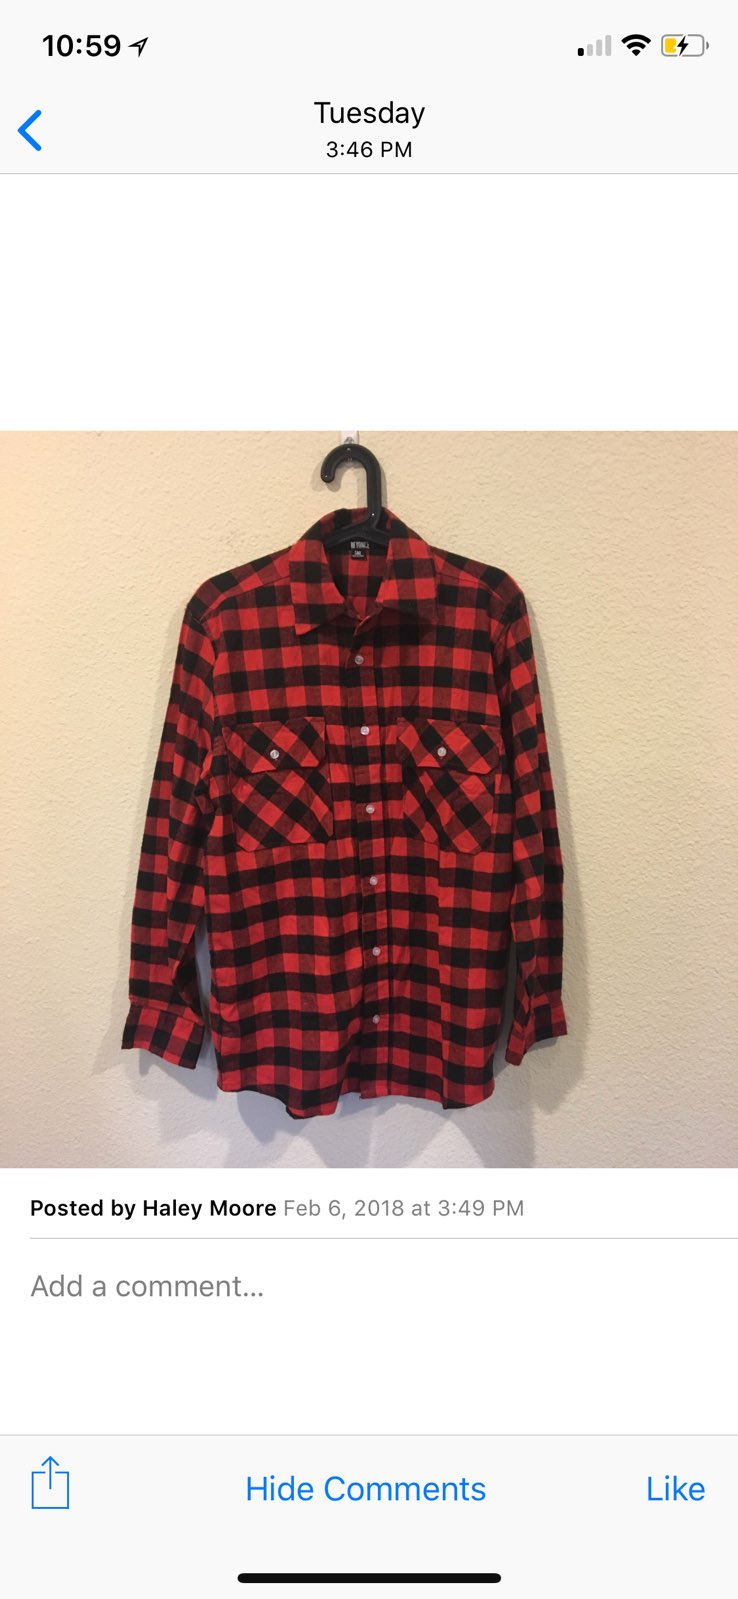 Beyoncé Flawless Buffalo Plaid Flannel